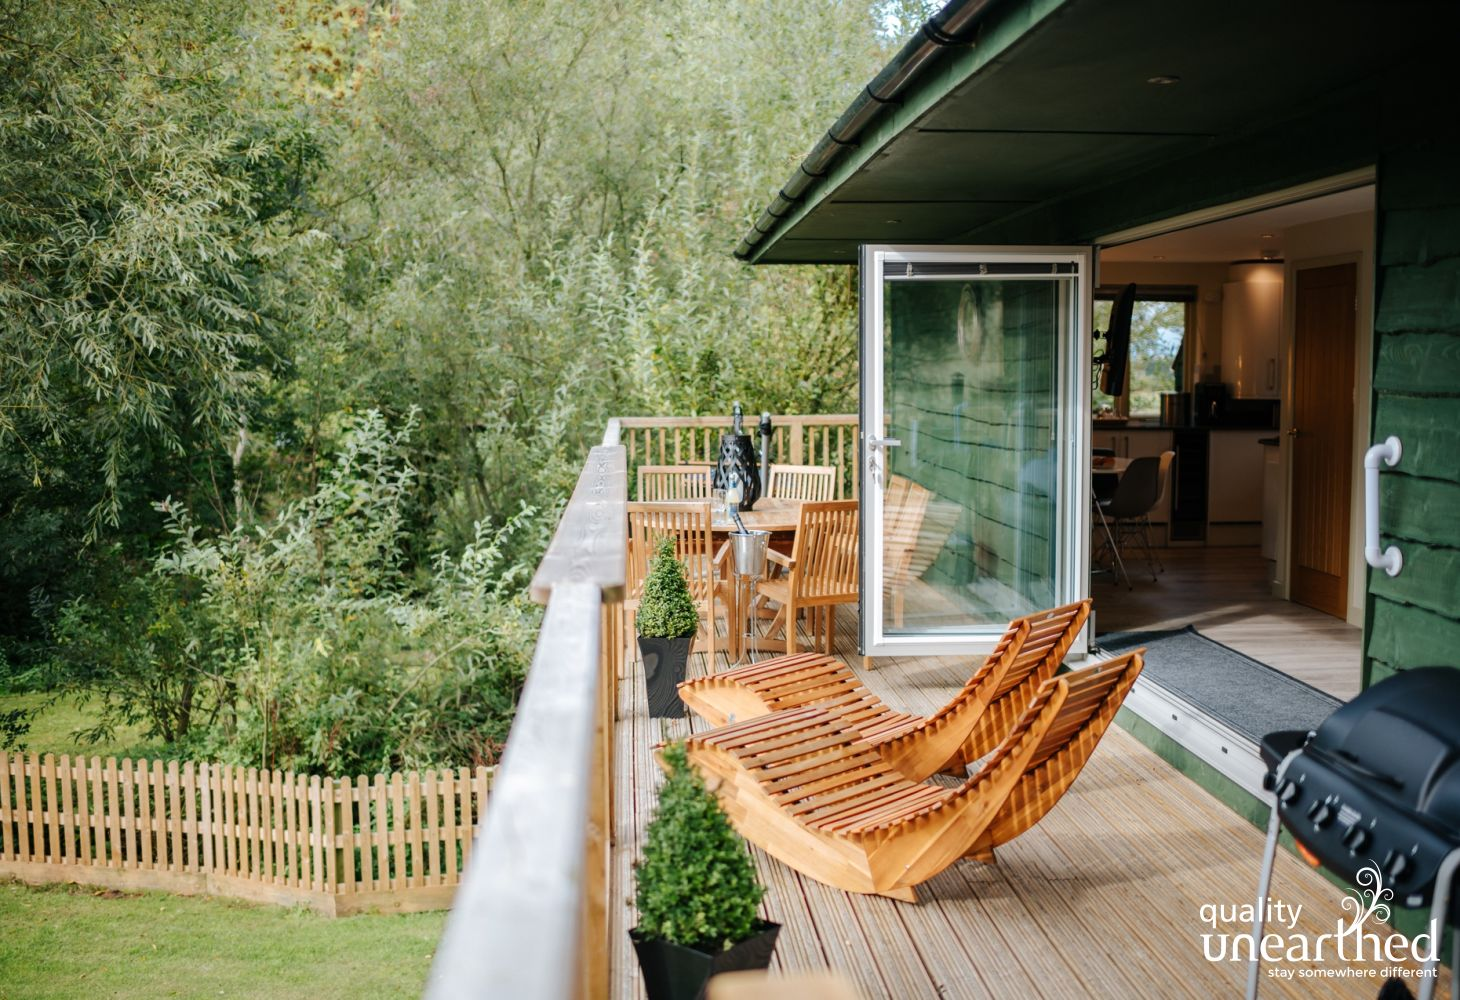 The treehouse deck overlooks the private garden